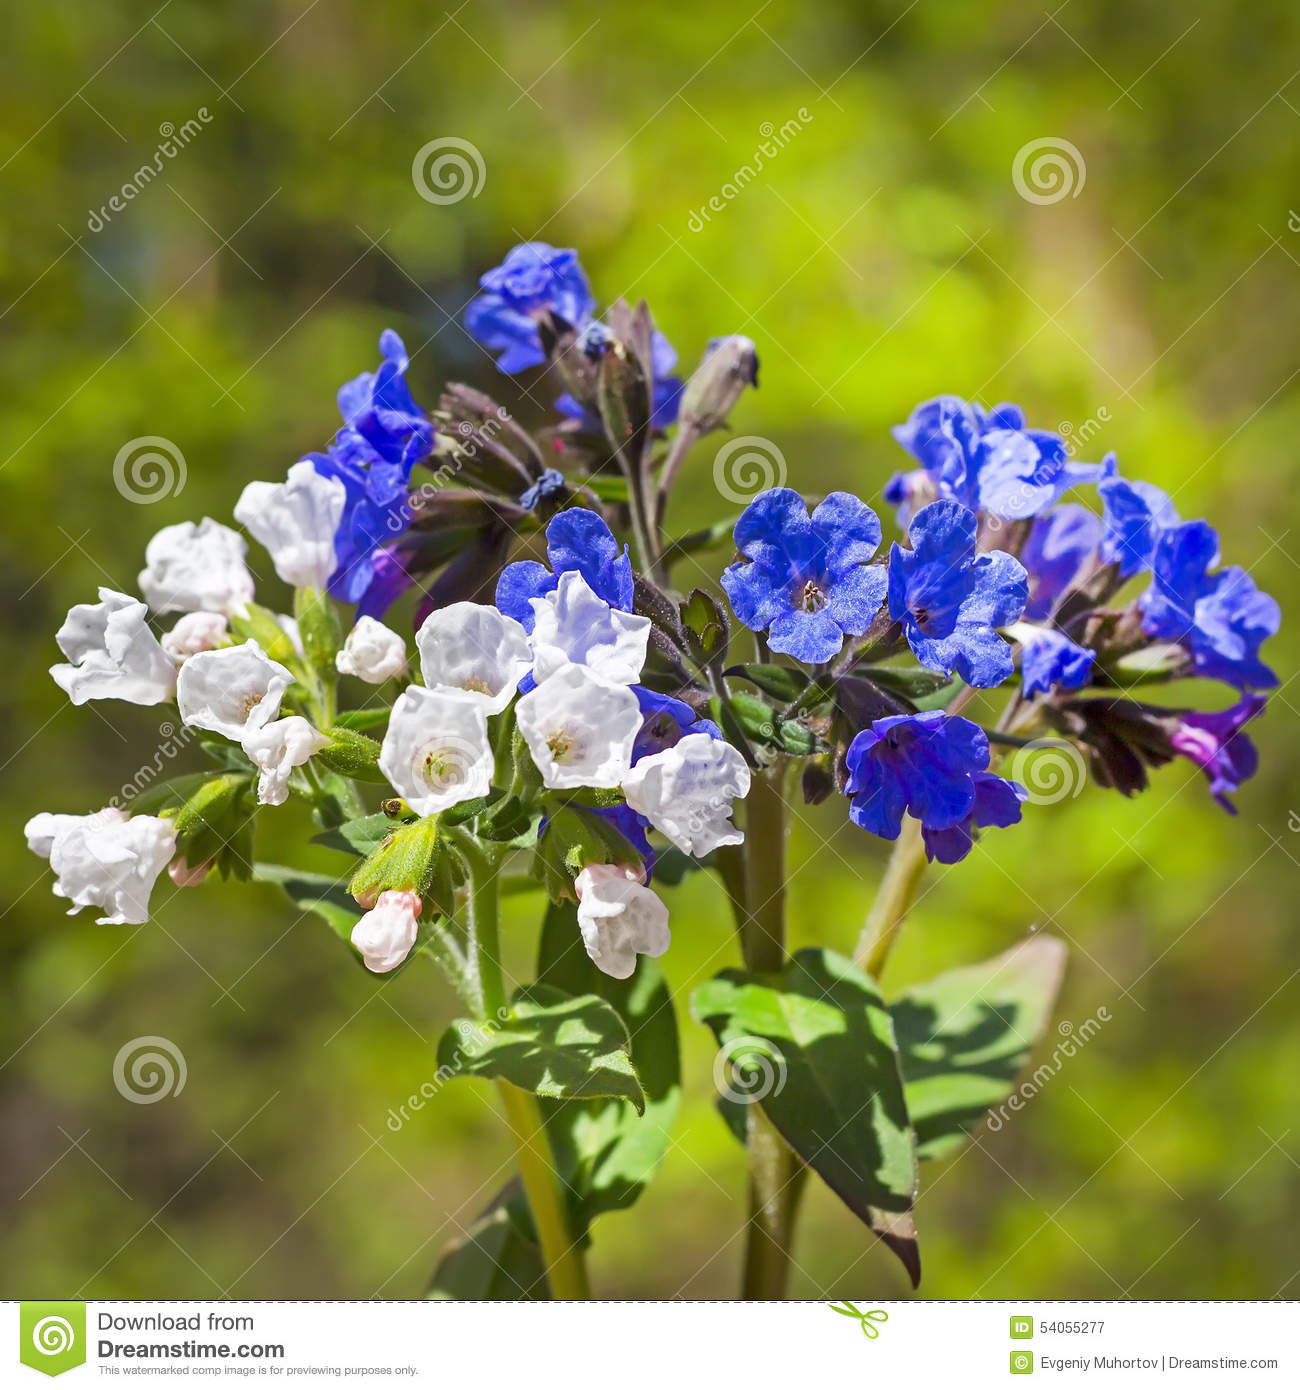 Medunits Herb (Latin Pulmonaria Mollis) Stock Image - Image of ...